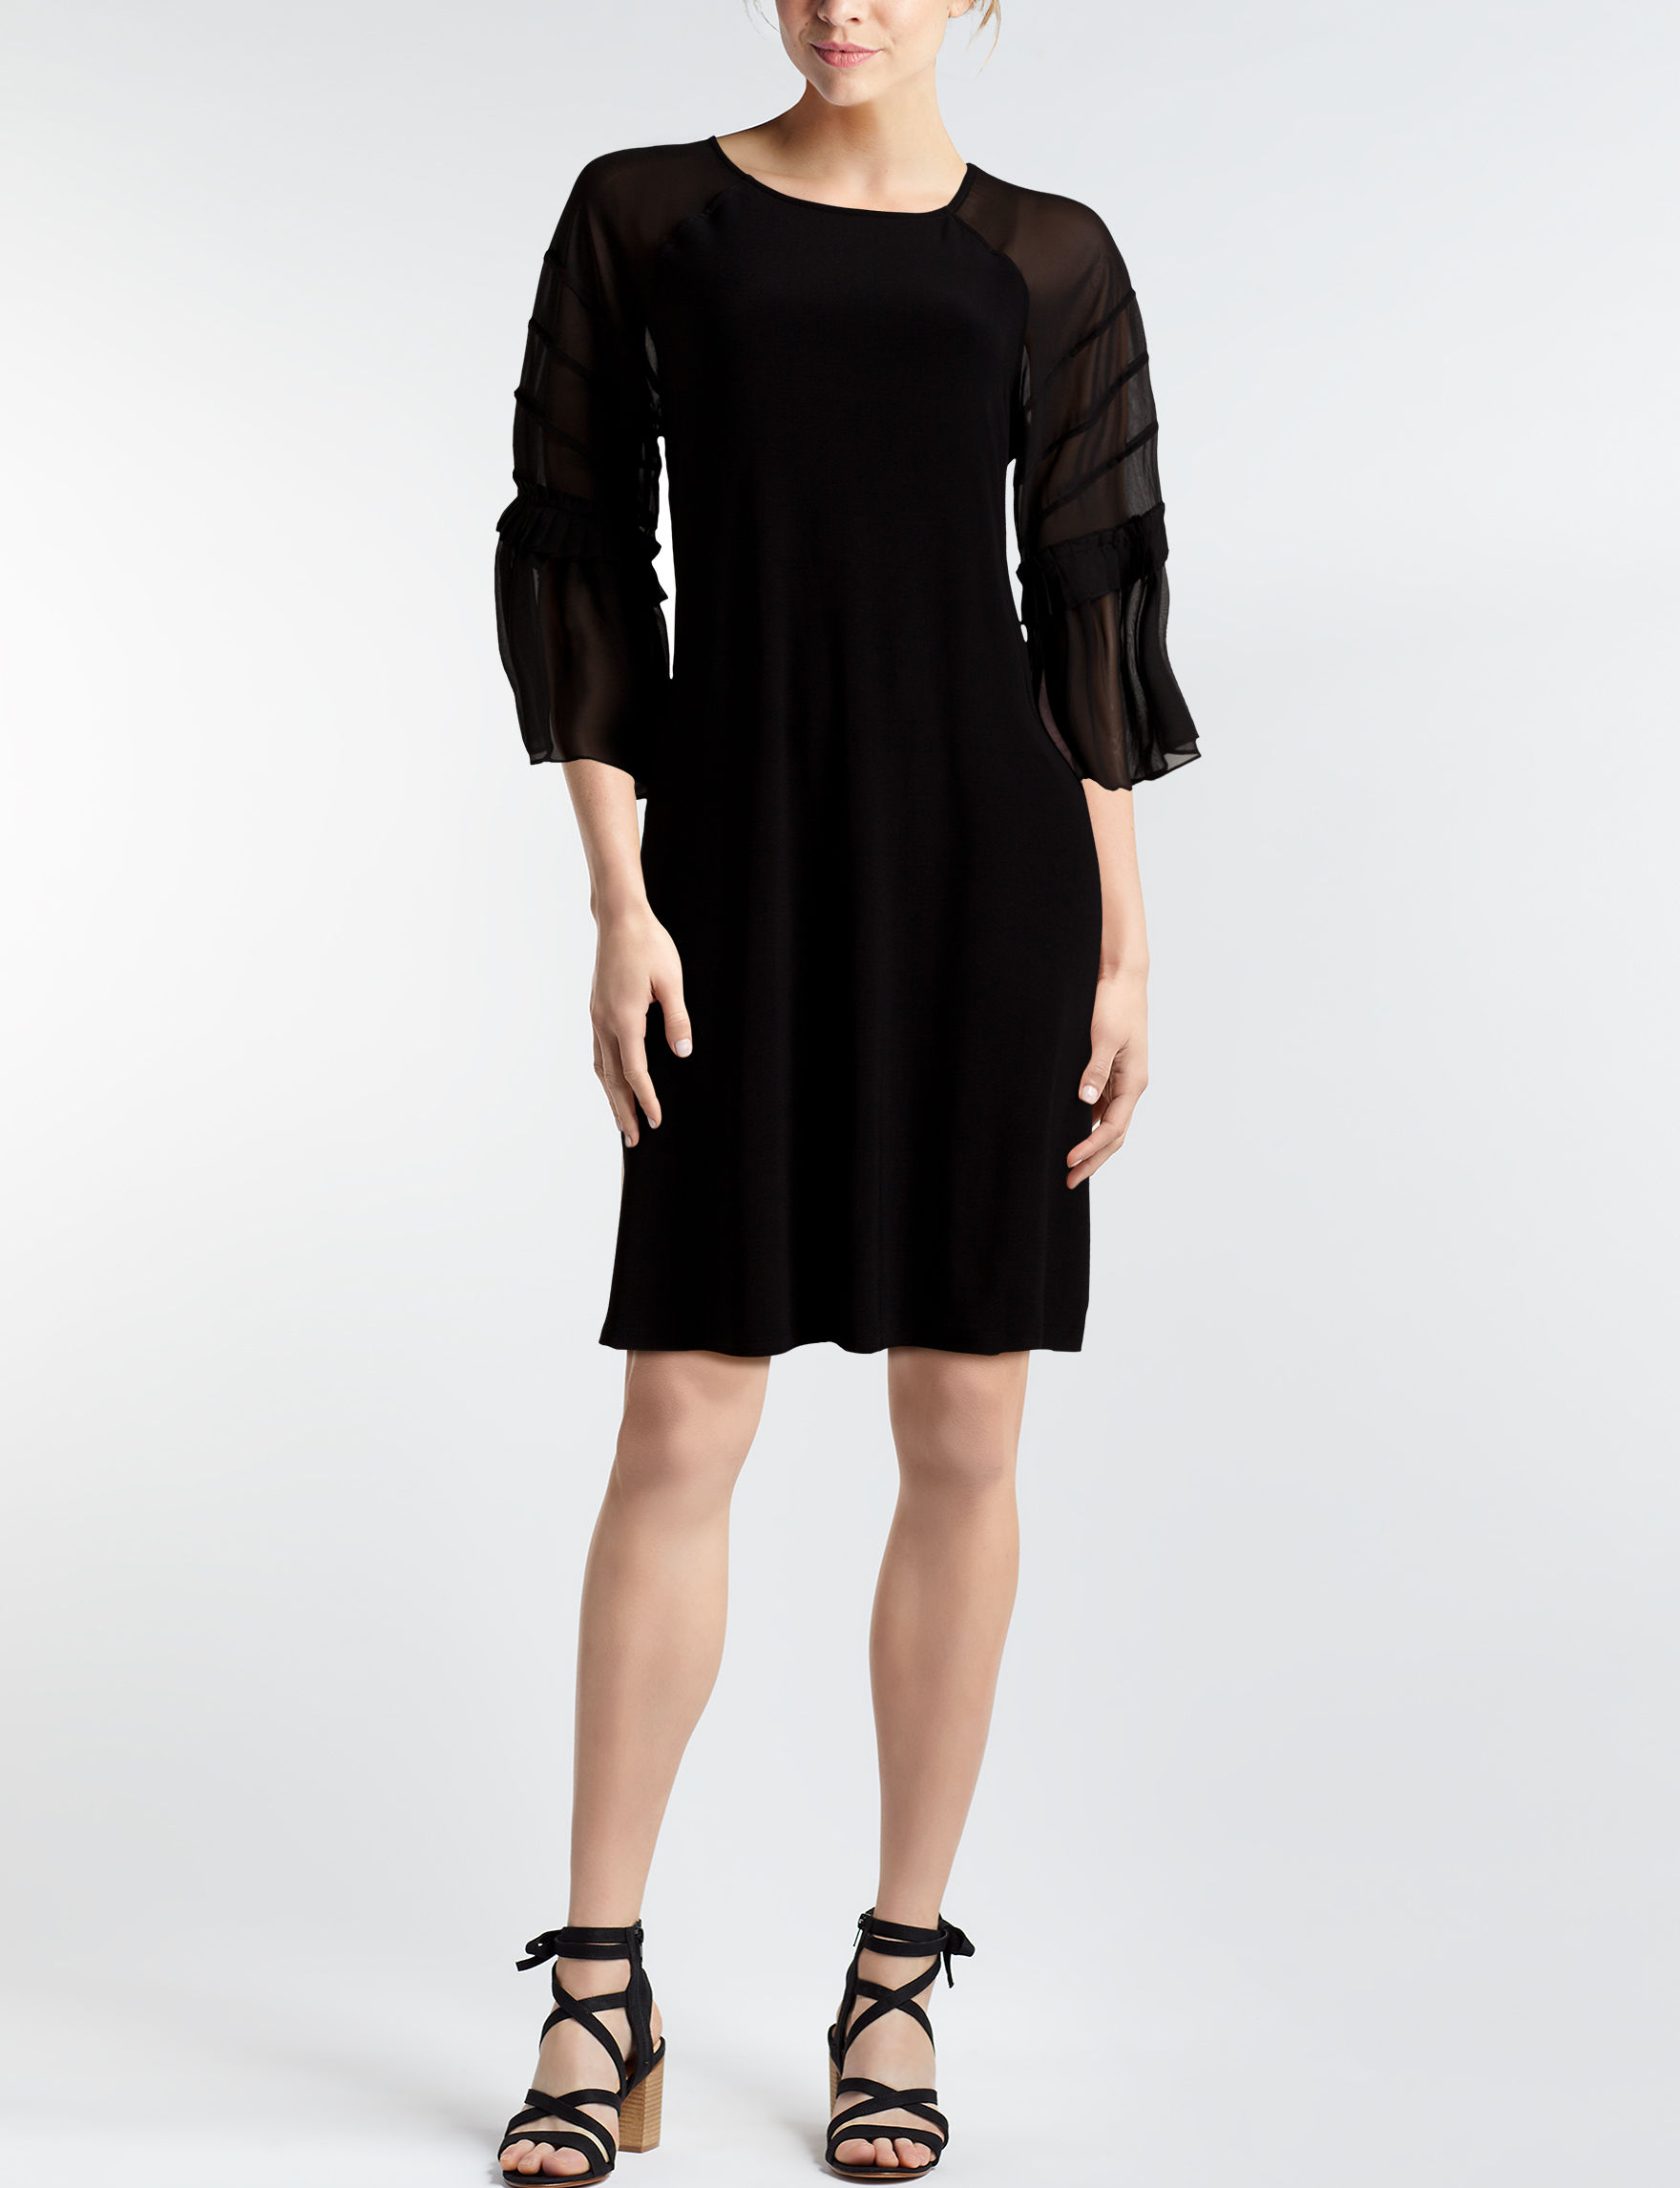 Nina Leonard Black Everyday & Casual A-line Dresses Fit & Flare Dresses